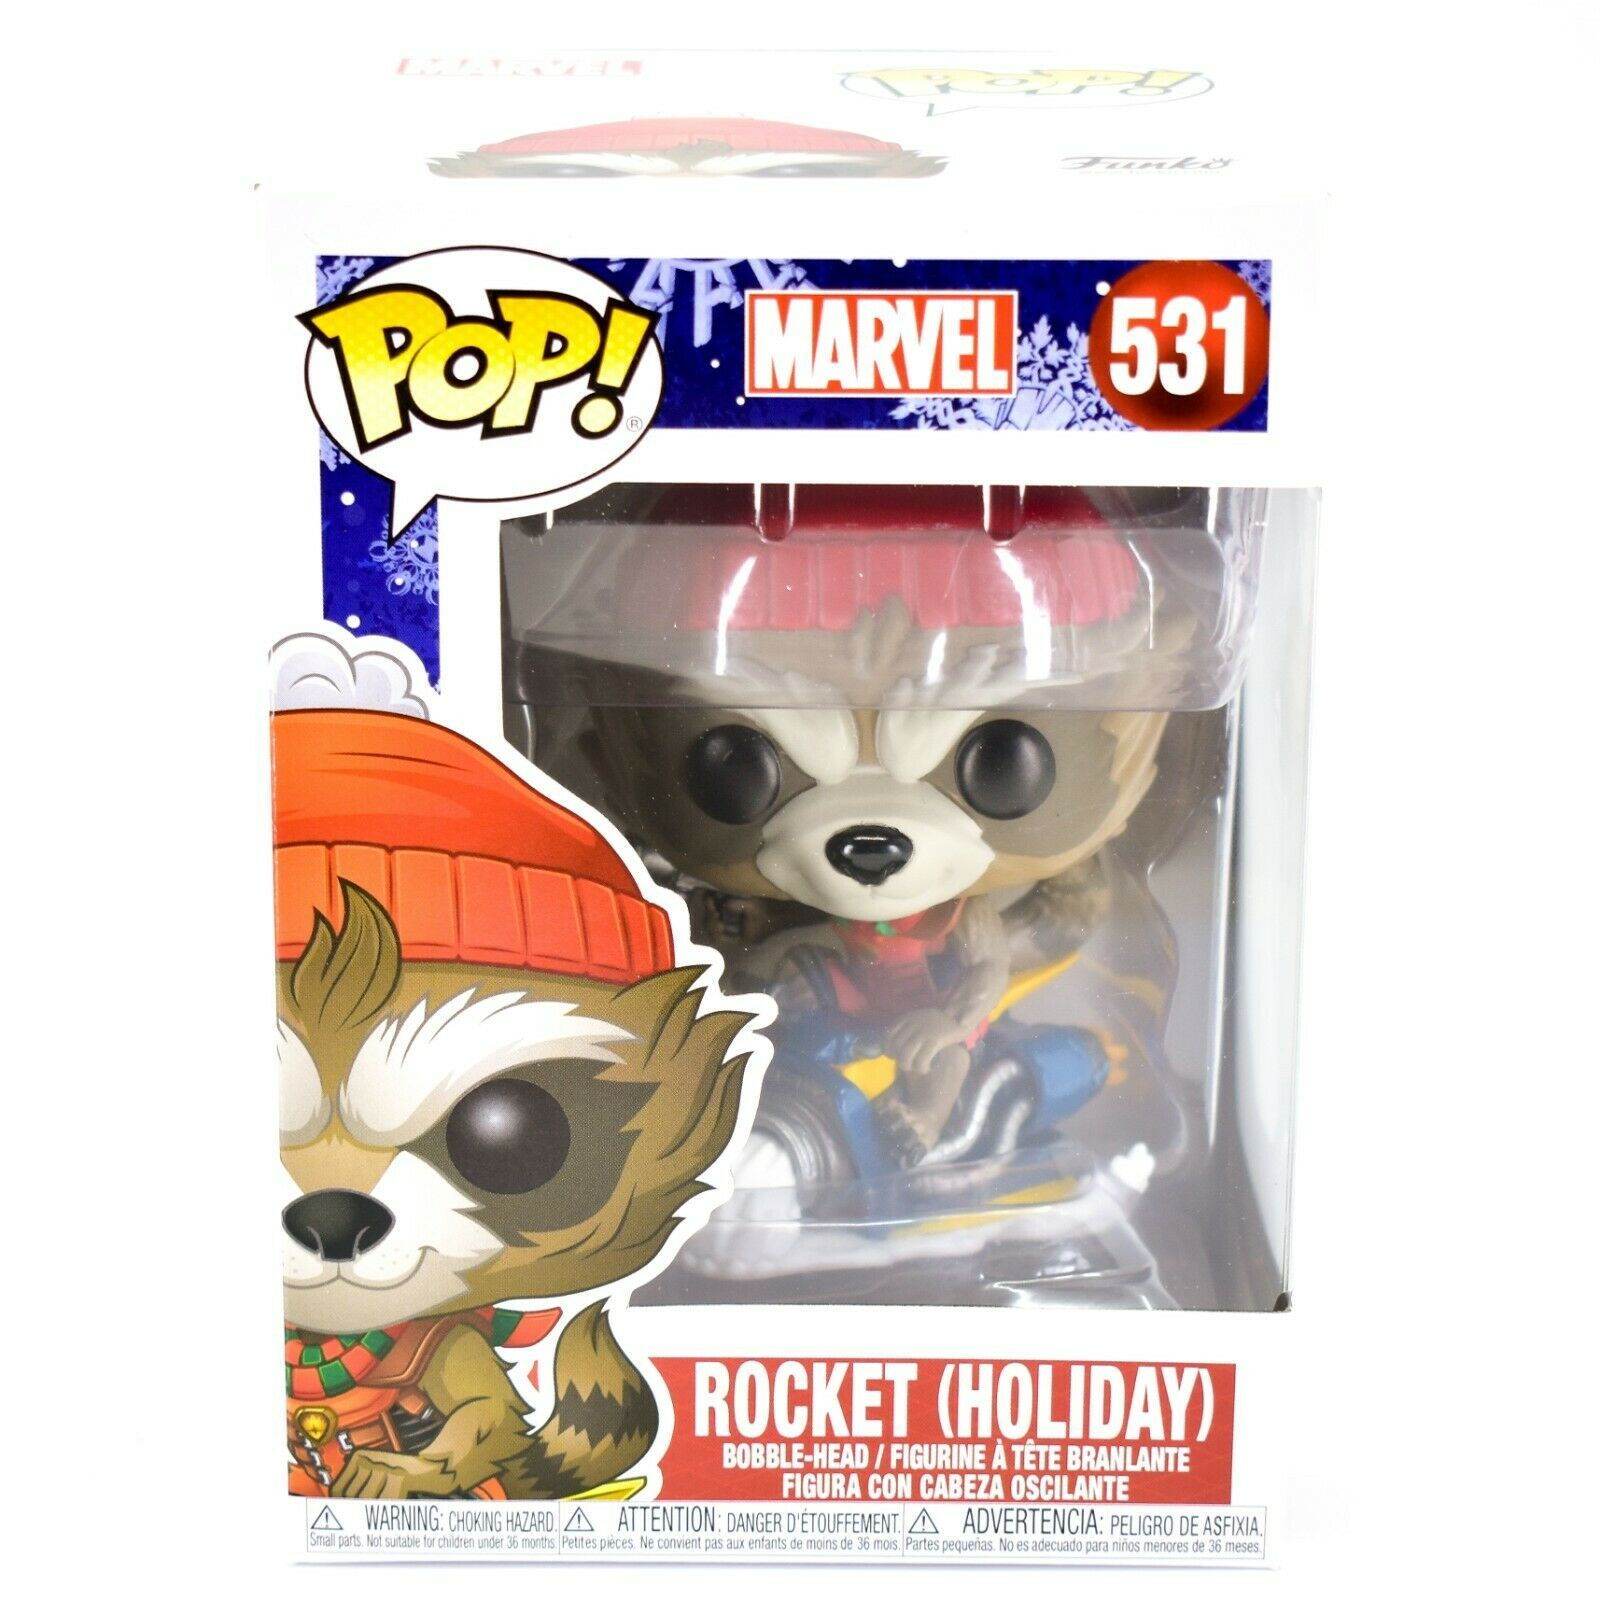 Funko Pop! Marvel Christmas Holiday Rocket Raccoon #531 Vinyl Bobble-Head Figure